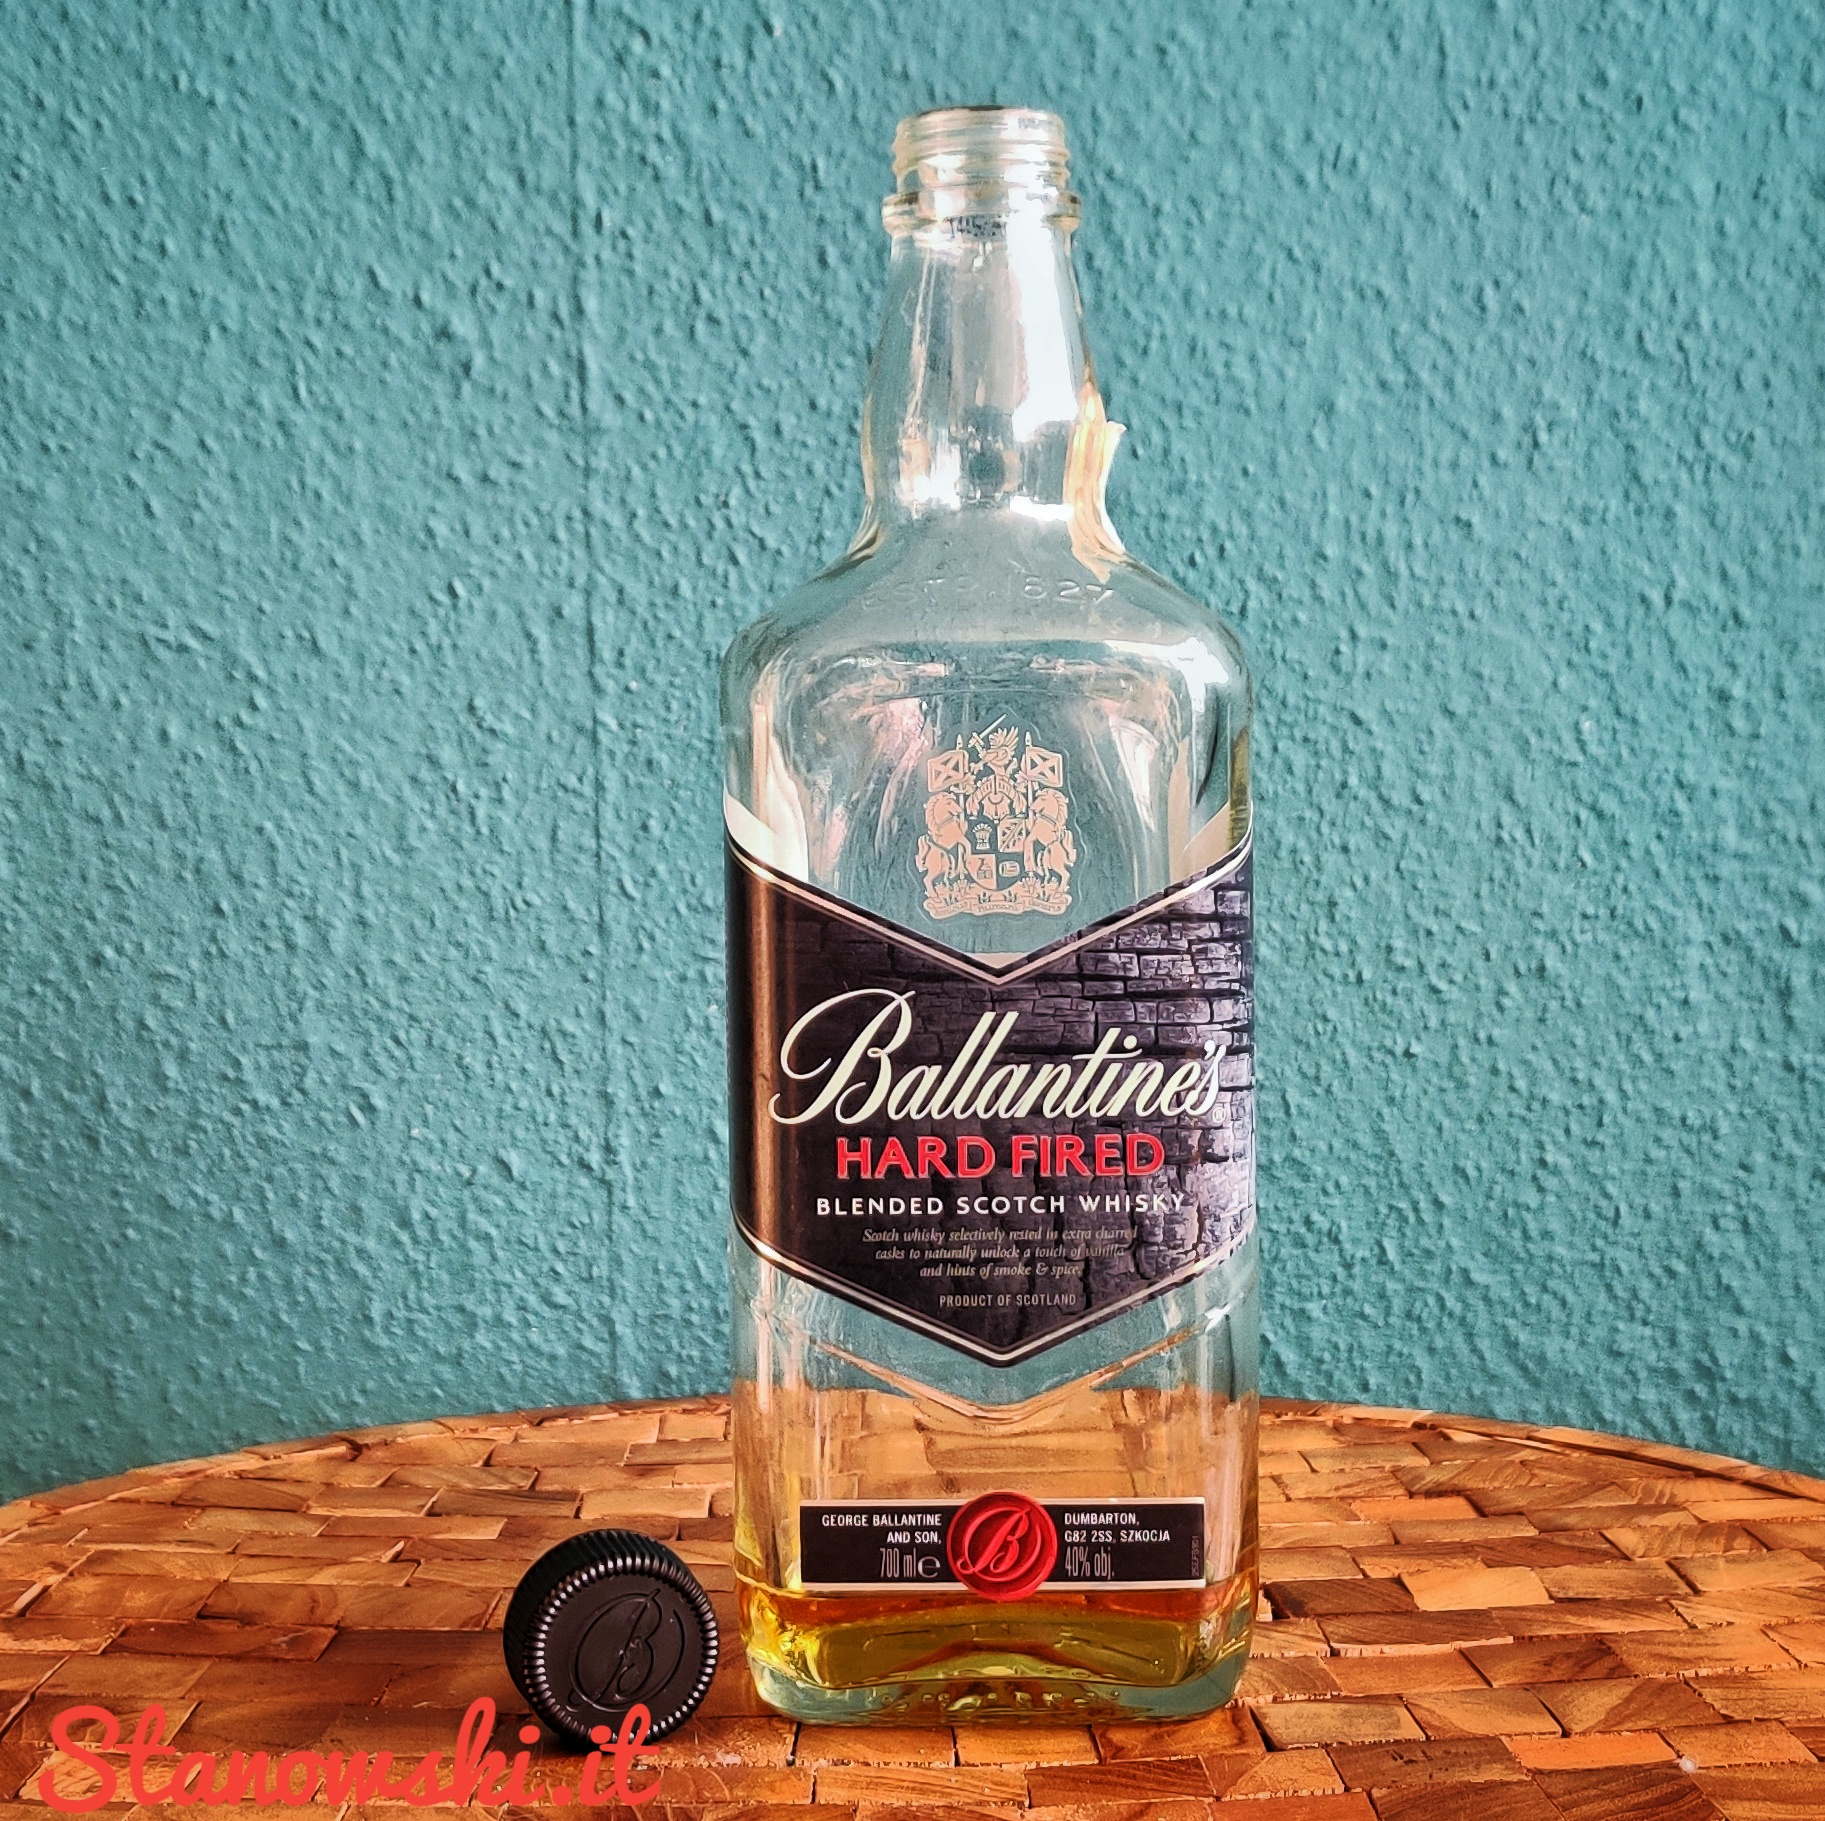 Ballantine's Hard Fired